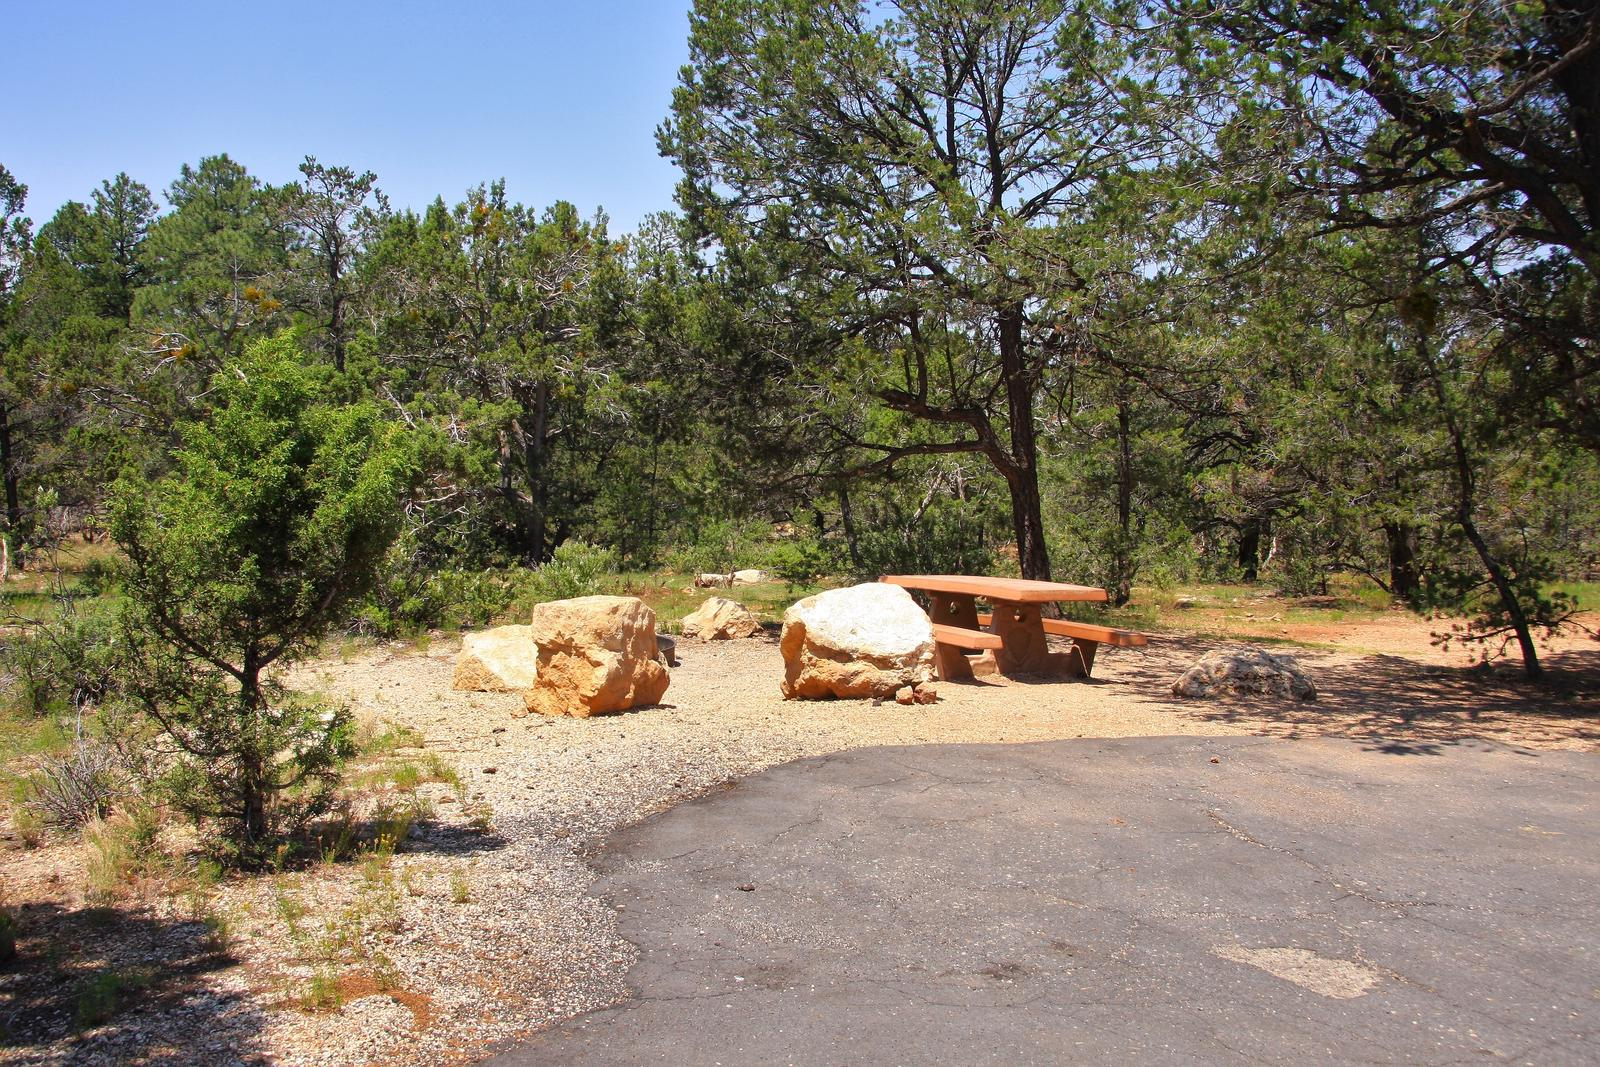 Picnic table, fire pit, and parking spot, Mather CampgroundPicnic table, fire pit, and parking spot for Juniper Loop 108, Mather Campground